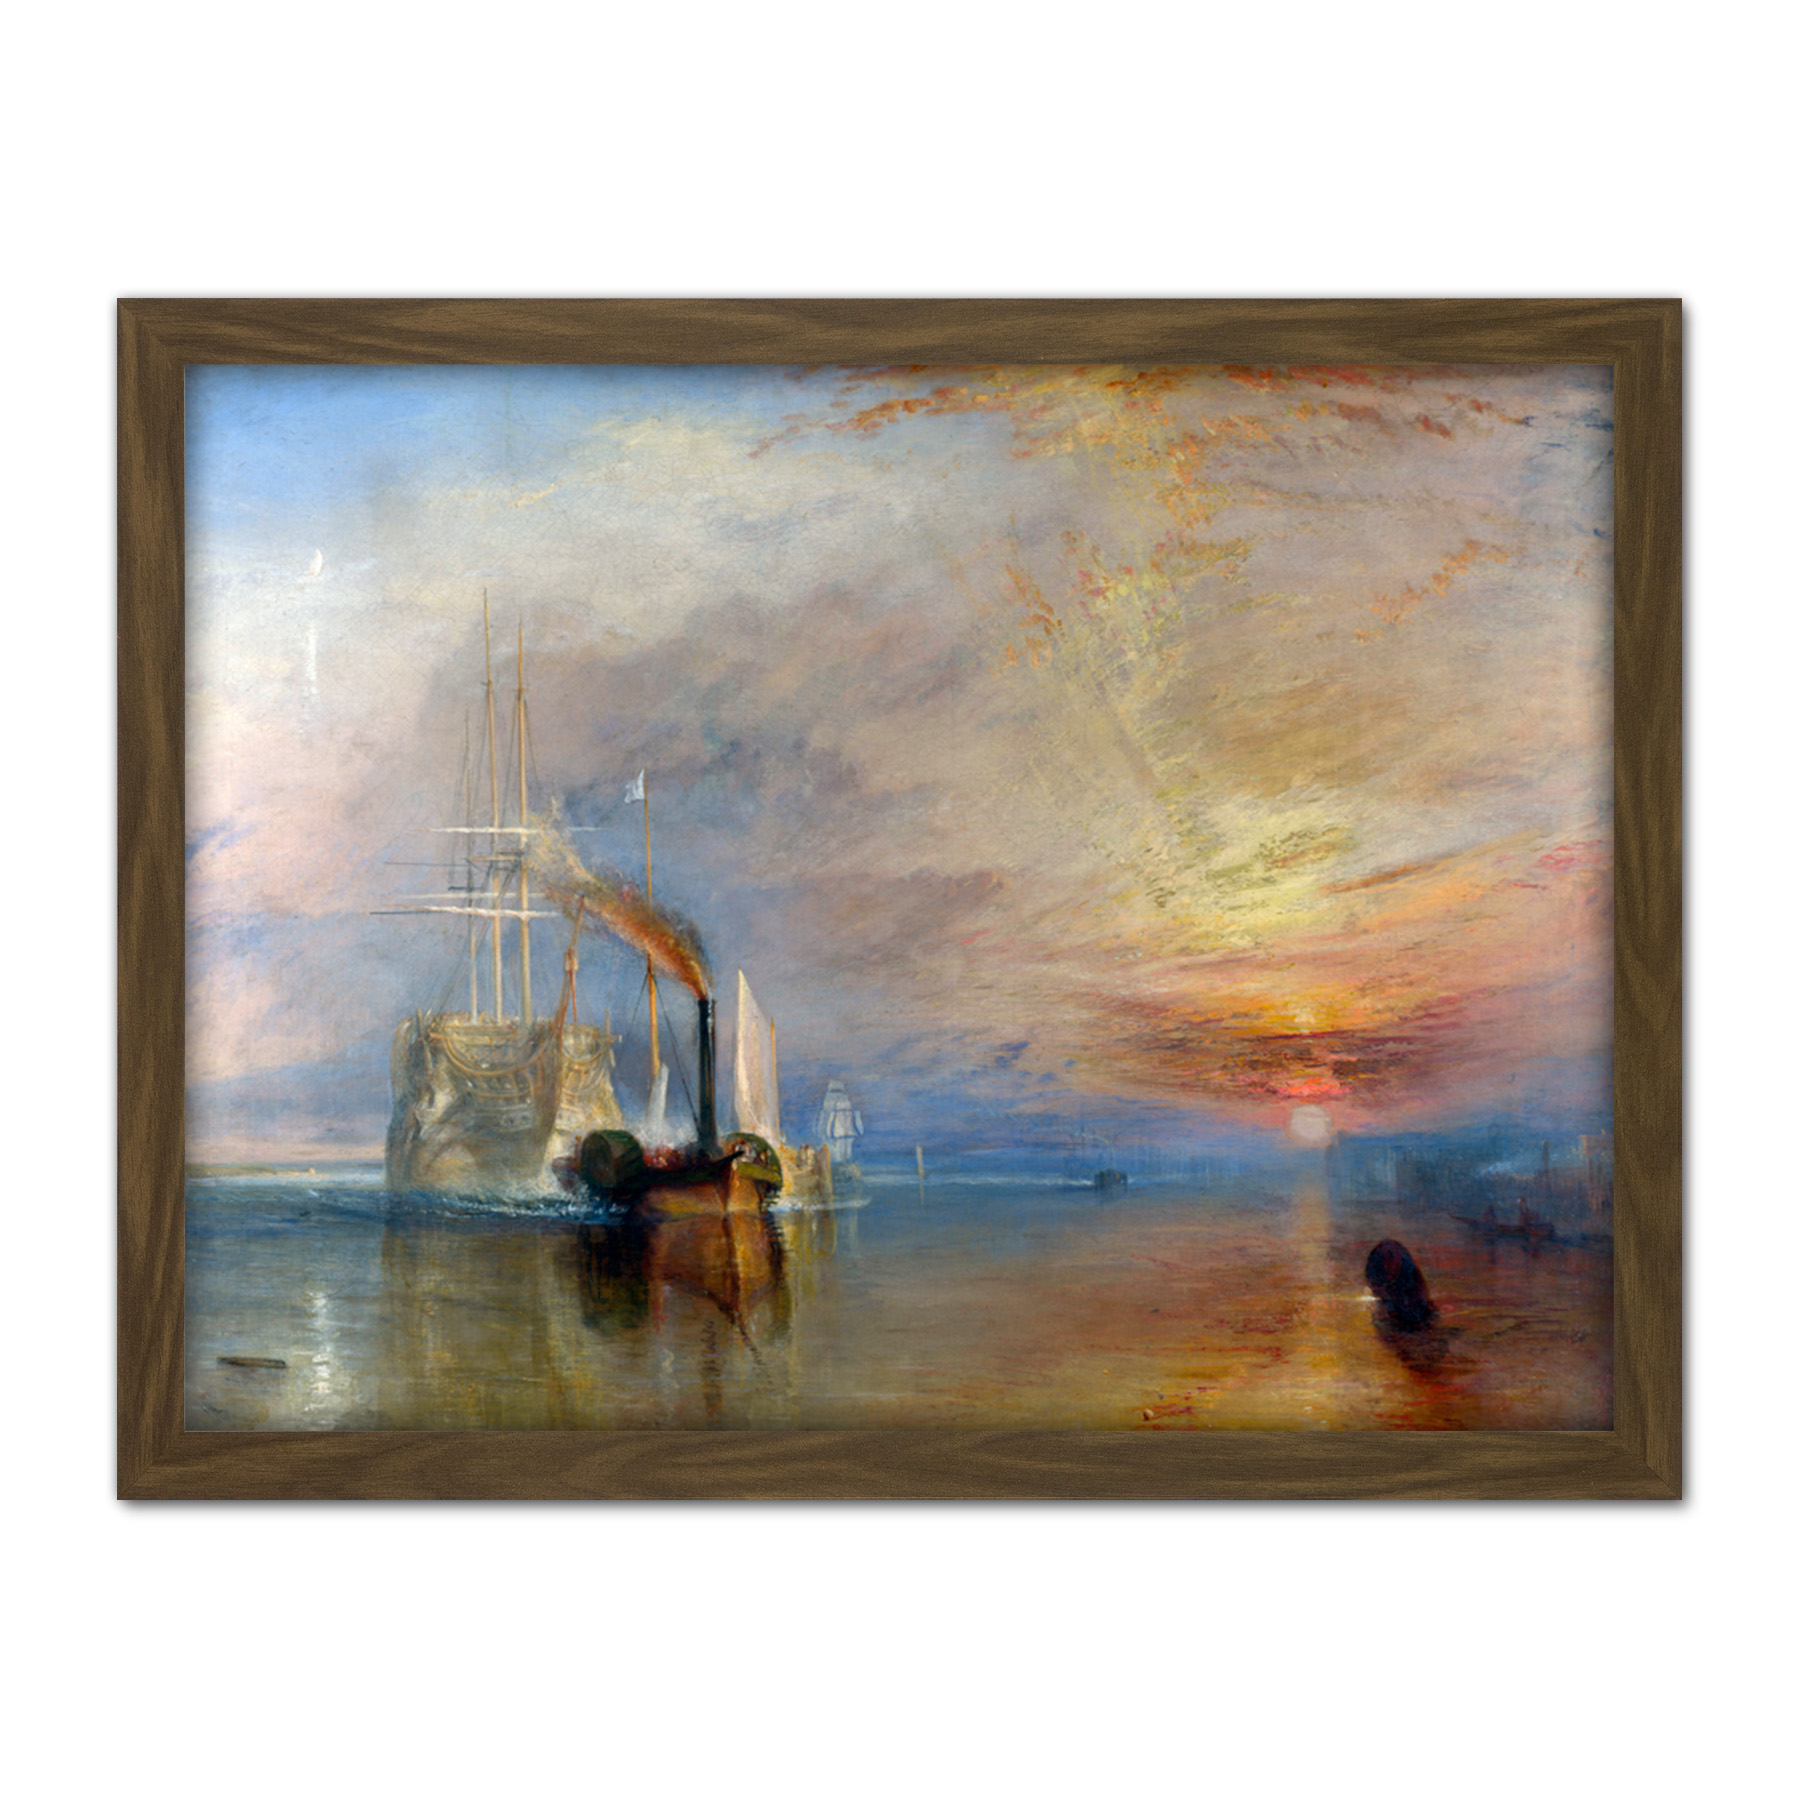 Turner-The-Fighting-Temeraire-Ship-Painting-Framed-Wall-Art-Print-18X24-In thumbnail 9